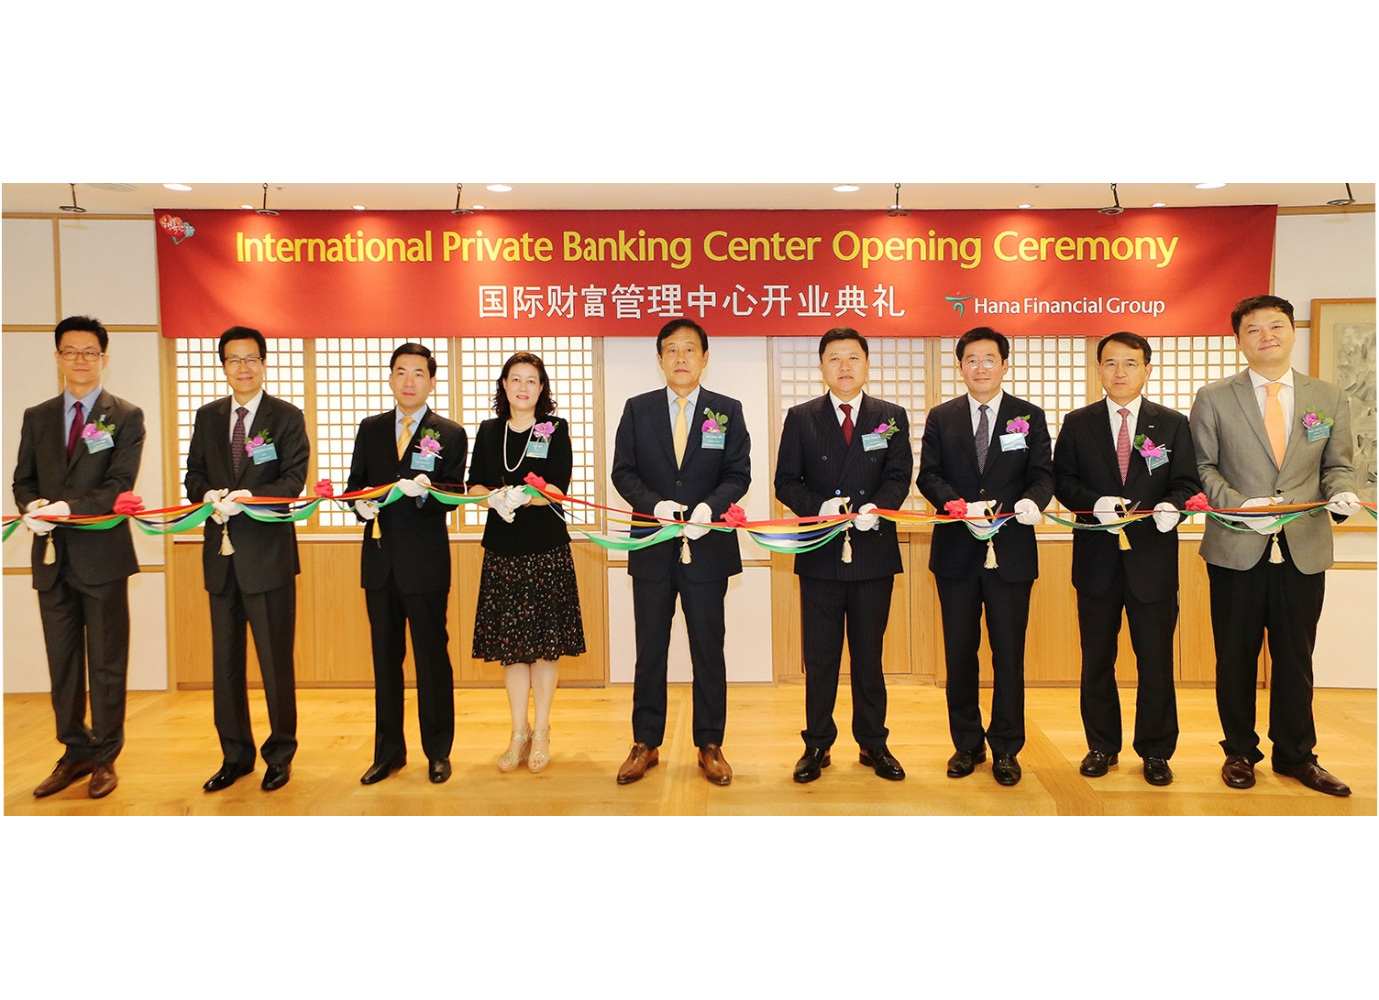 Hana Financial Group Chairman Kim Jung-tai (center) and Lancy Group Vice Chairman Shin Sang-kuk (4th from right) cut a ribbon during the launching ceremony for the International Private Banking Center held in Yeoksam-dong, Seoul, on June 18.